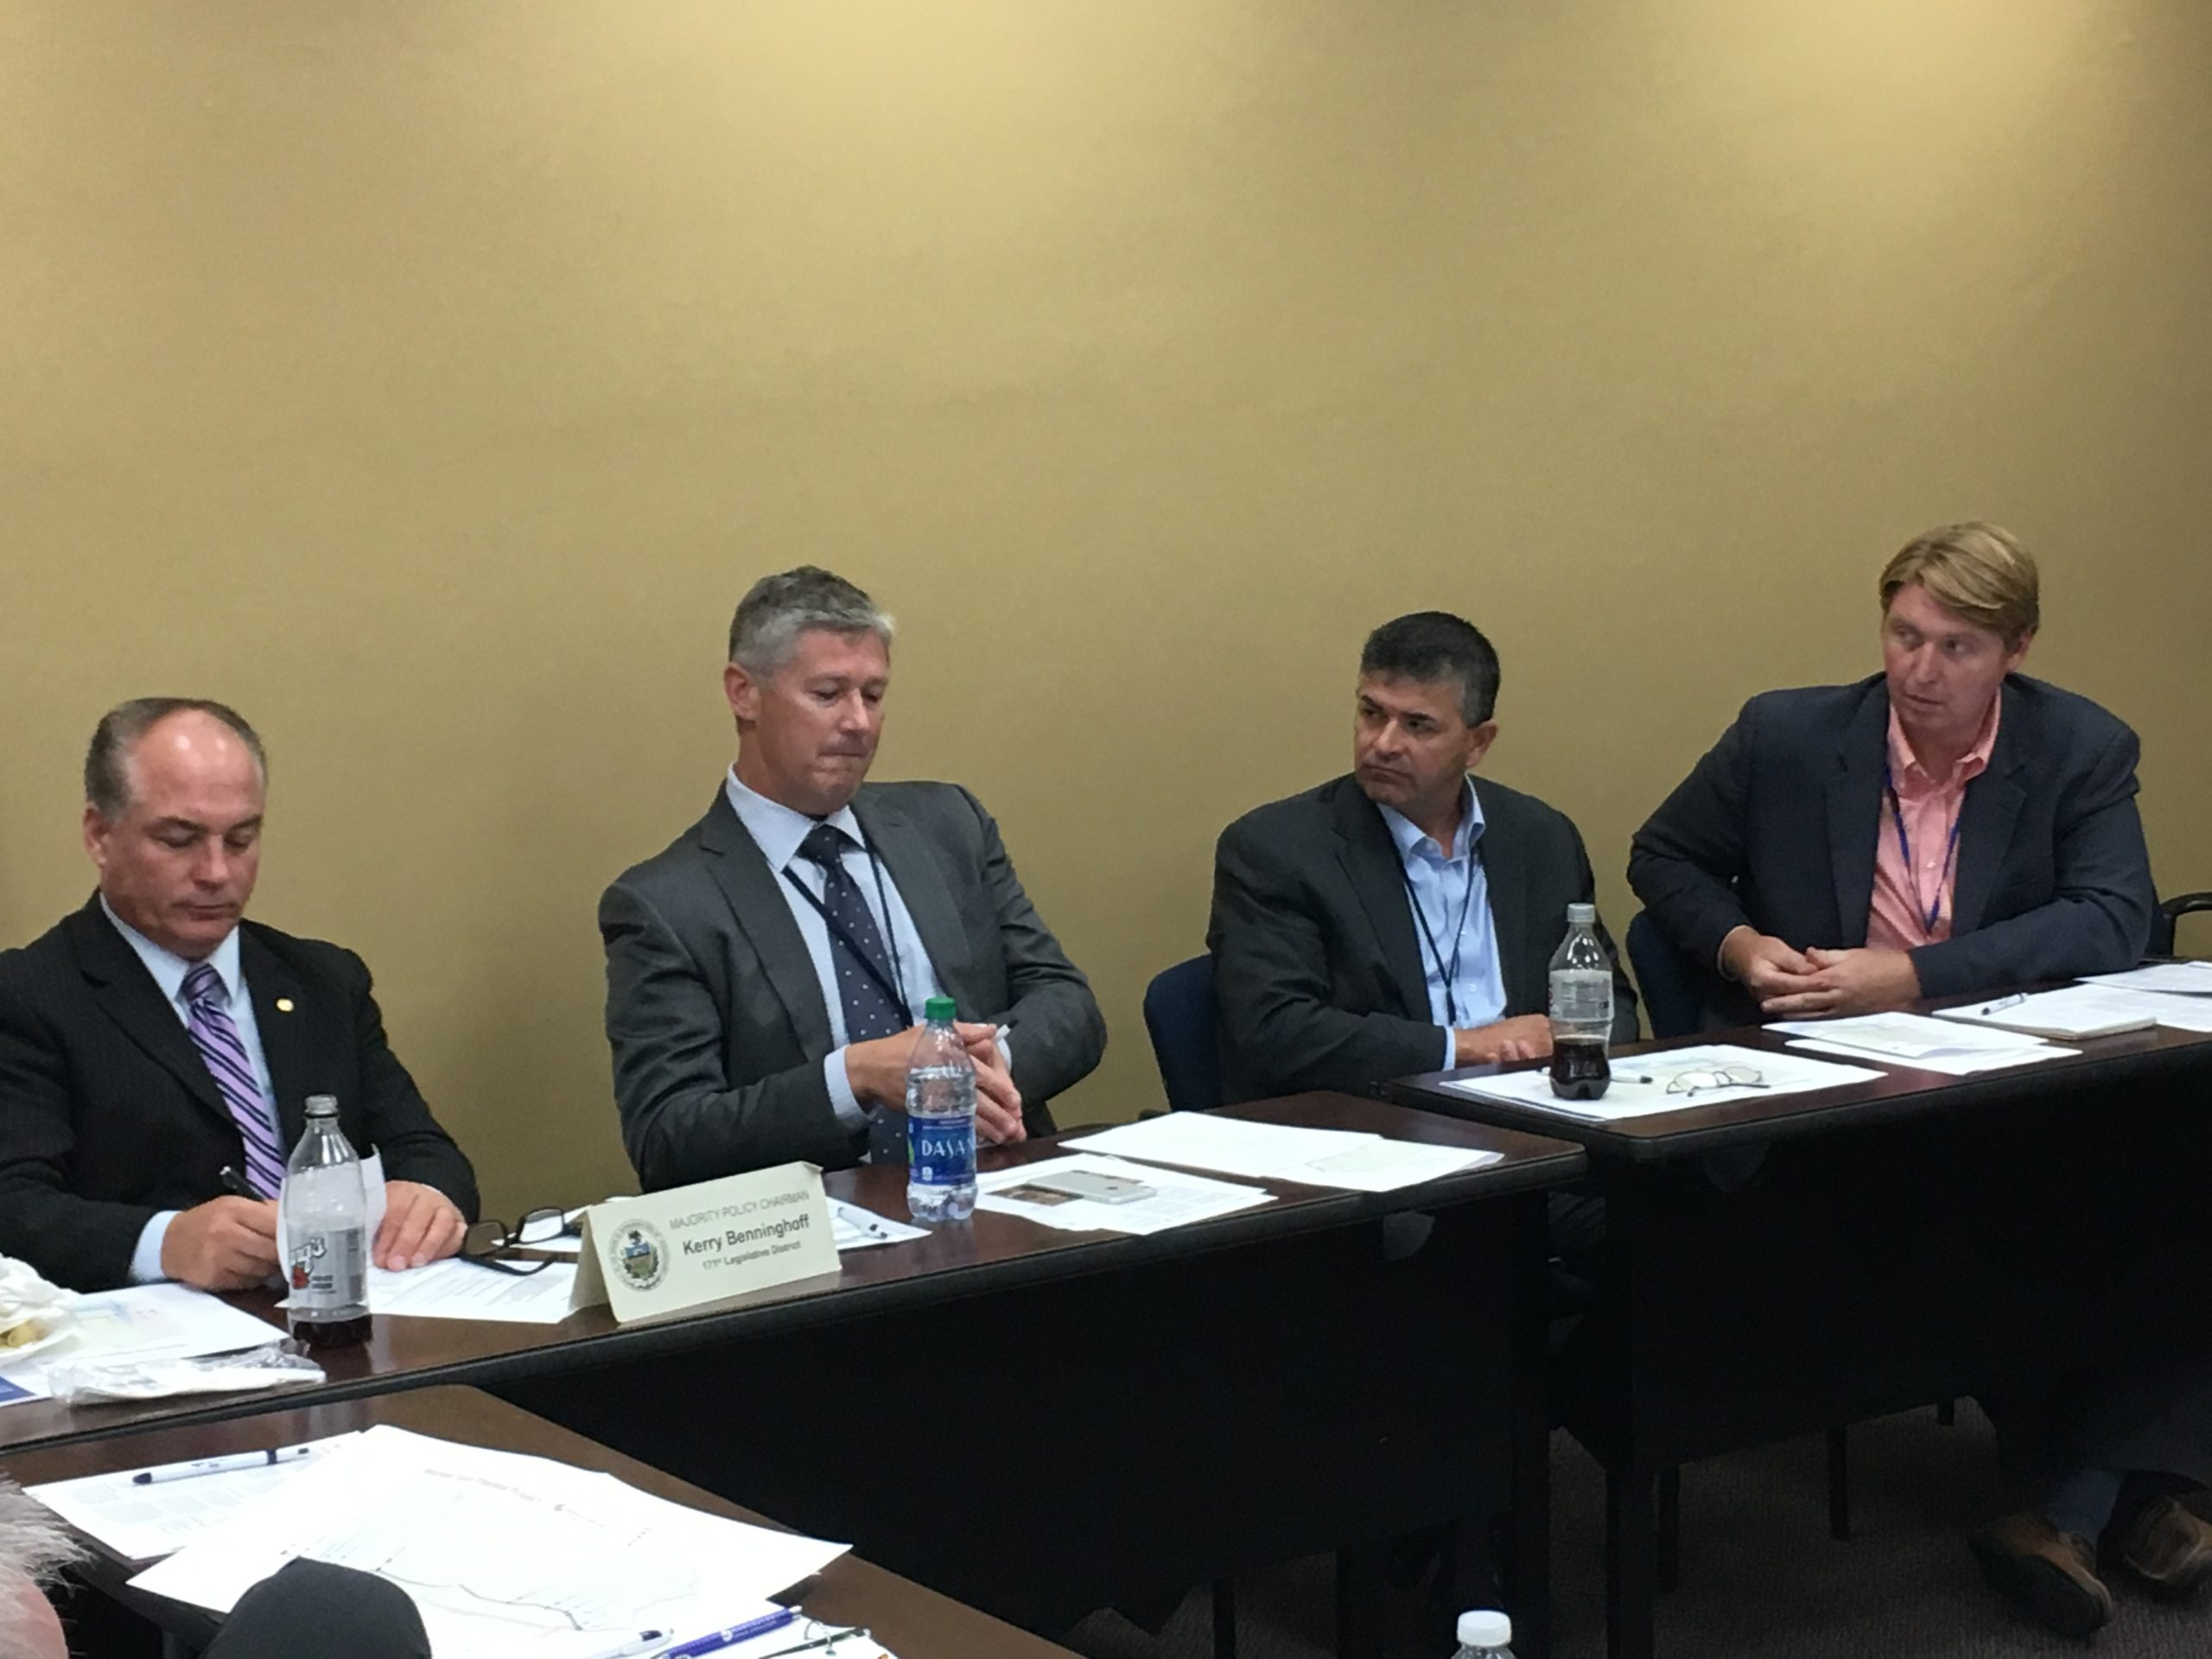 State Reps Descend Upon Marcus Hook to Laud Benefits of Marcellus Shale